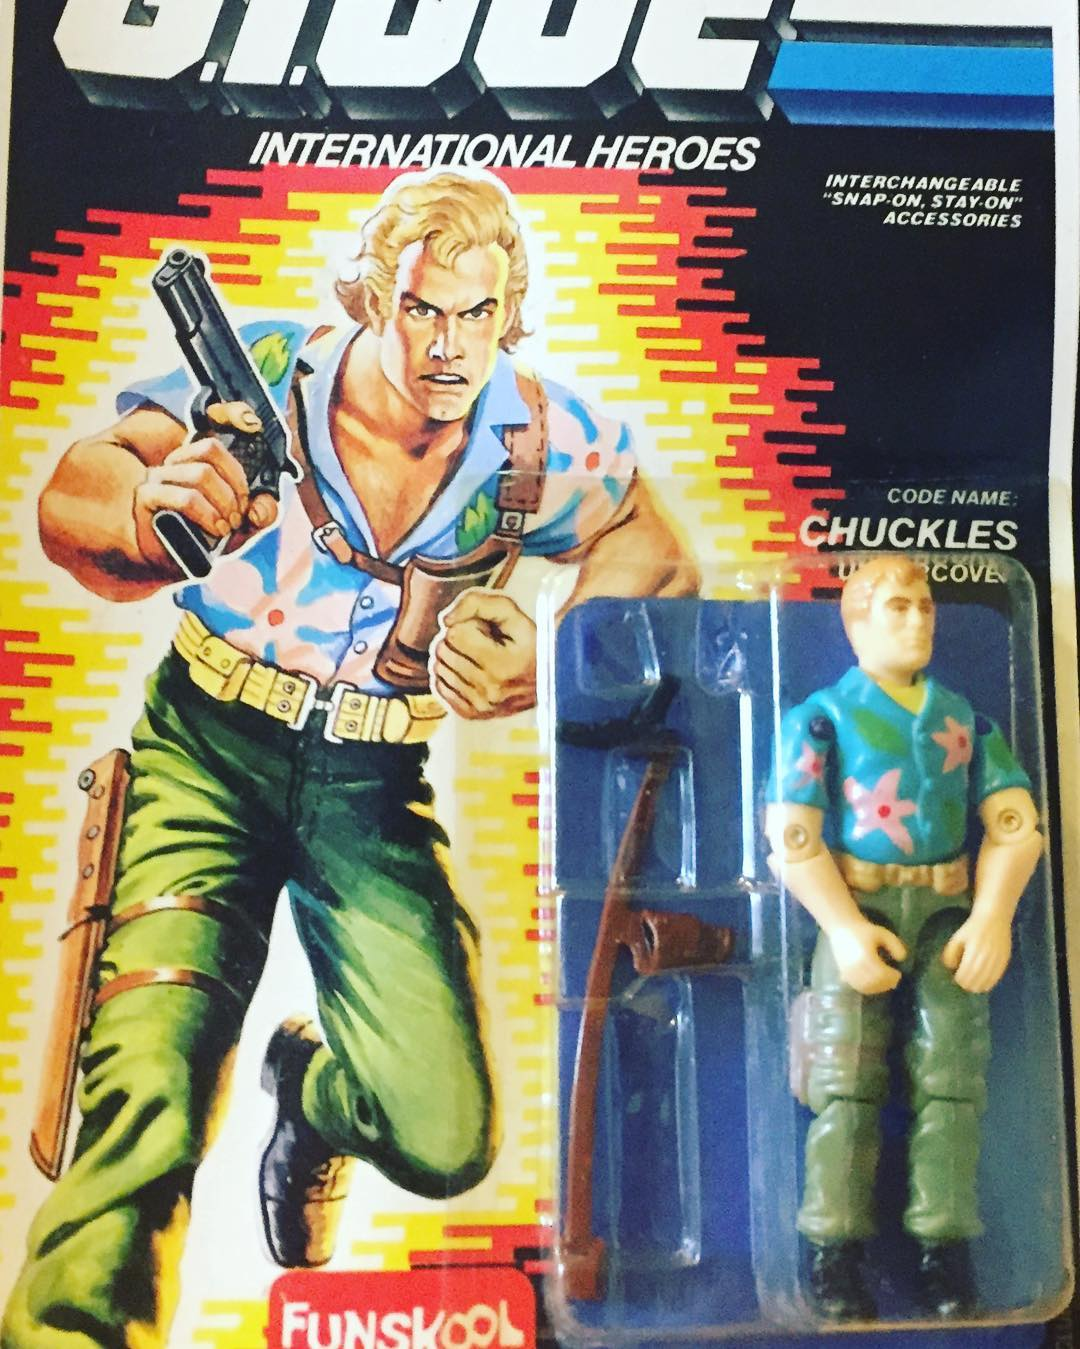 My Version Of Why You Re A Great Catch I Scored With: Russian Funskool GI Joe Jamboree